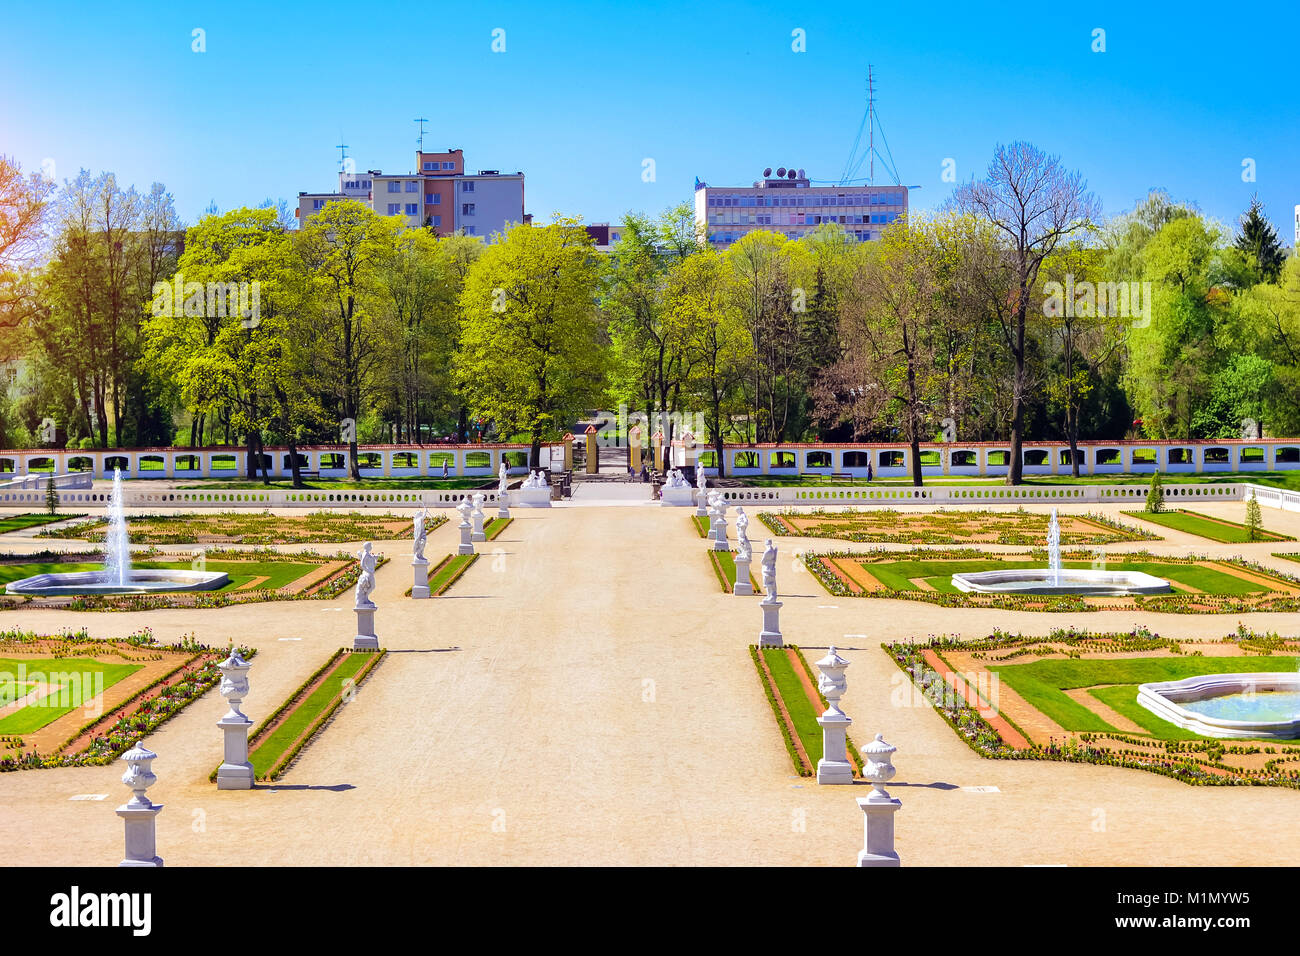 Sculptures in Park of Branicki Palace and Medical University of Bialystok Clinical Hospitals in Poland. Architecture - Stock Image